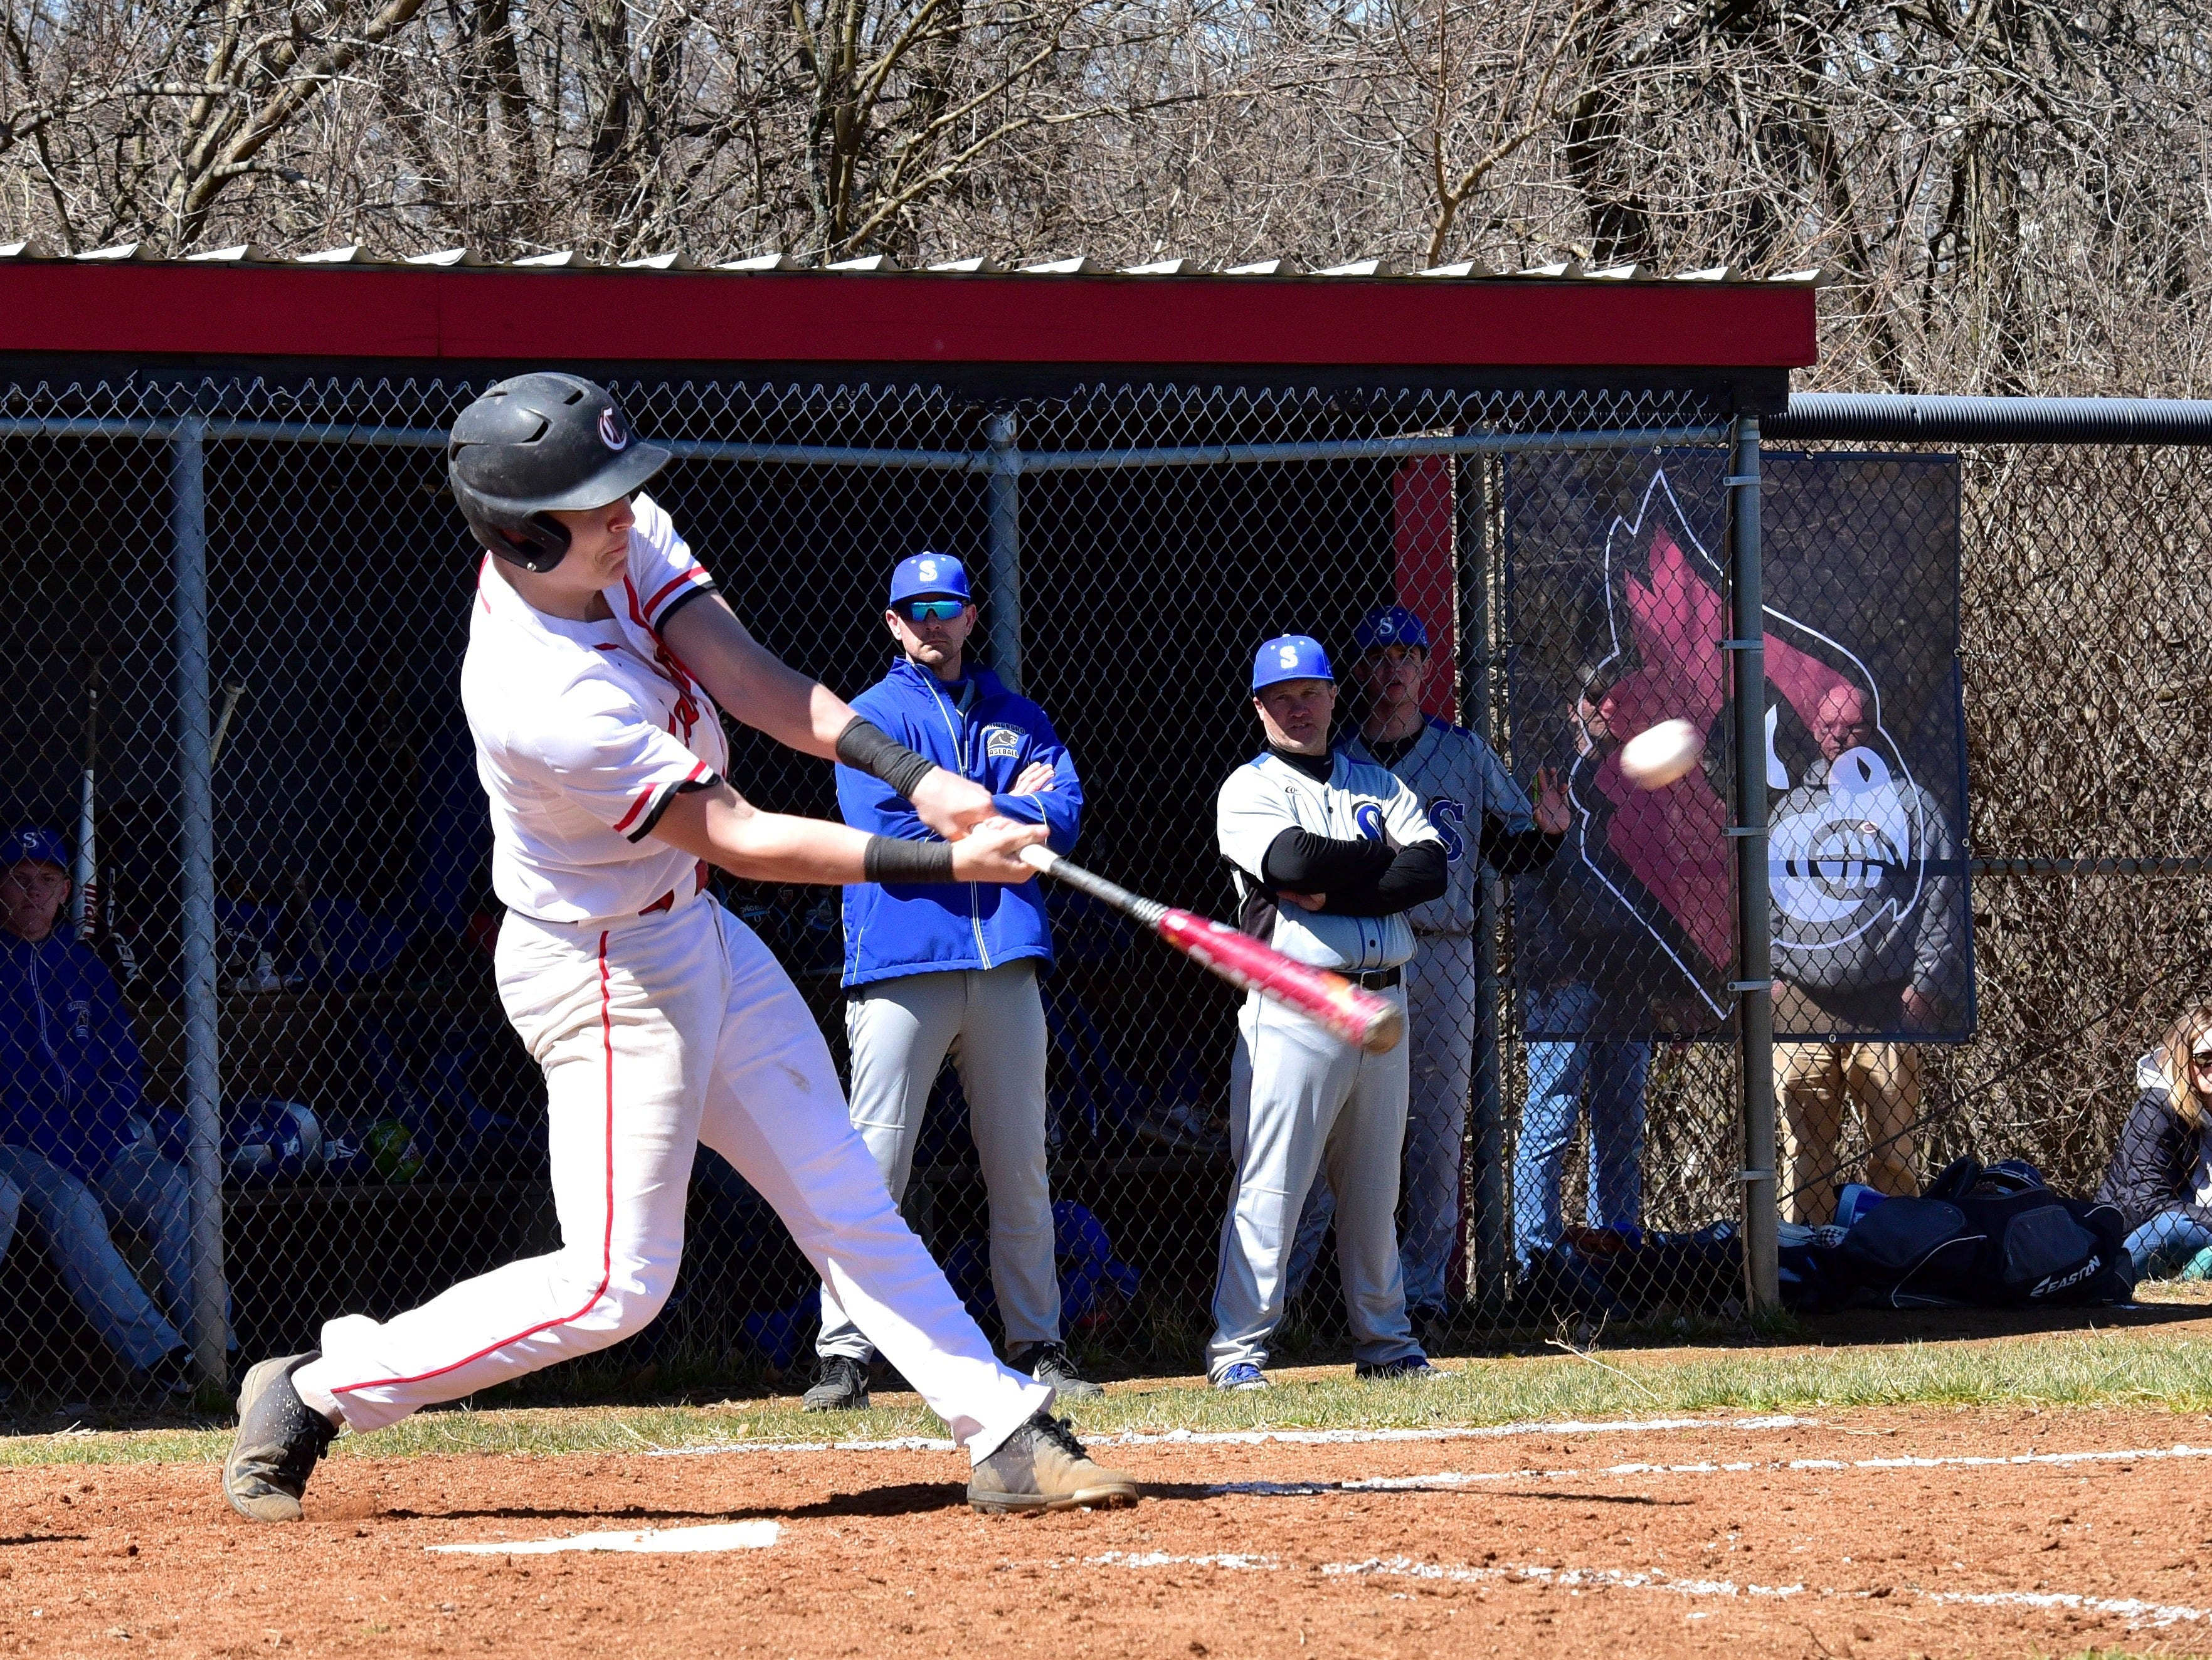 Luke Murray of Colerain launches a solo walk off homerun as the Cardinals top Springboro on opening day of high school baseball in Cincinnati at Colerain High School, March 23, 2019.